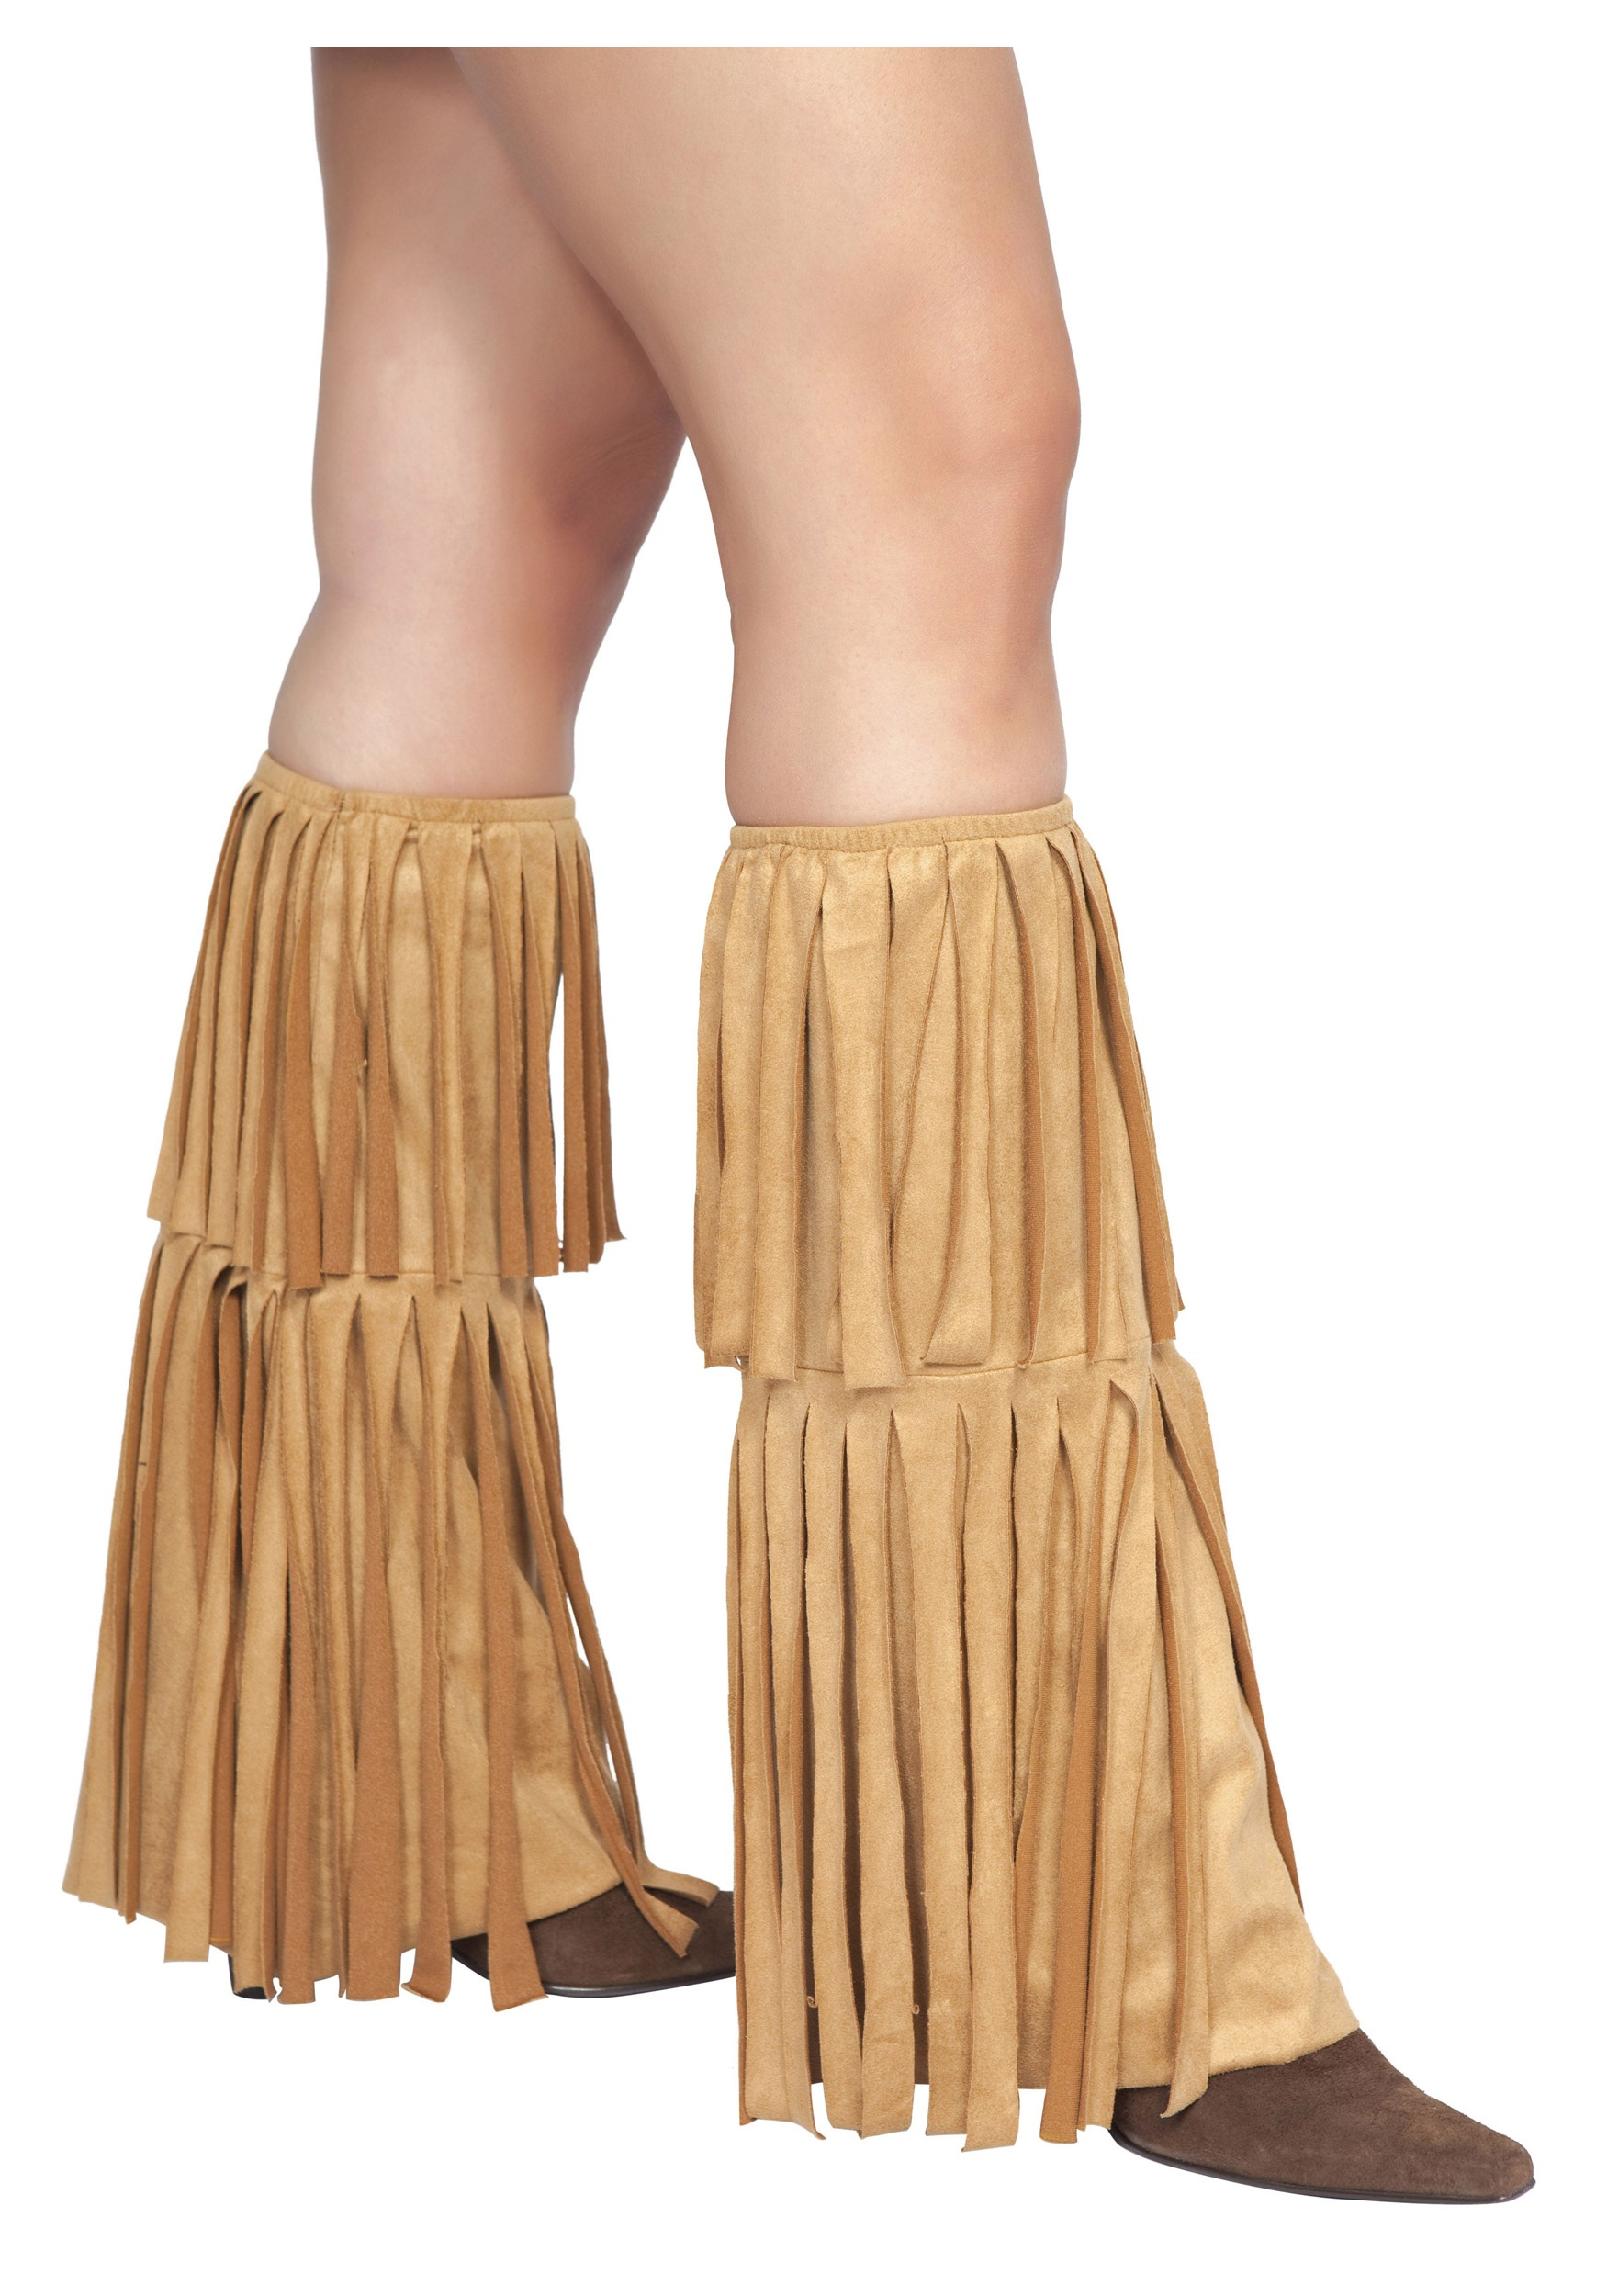 Plus Size Brown Fringed Hippie Costume